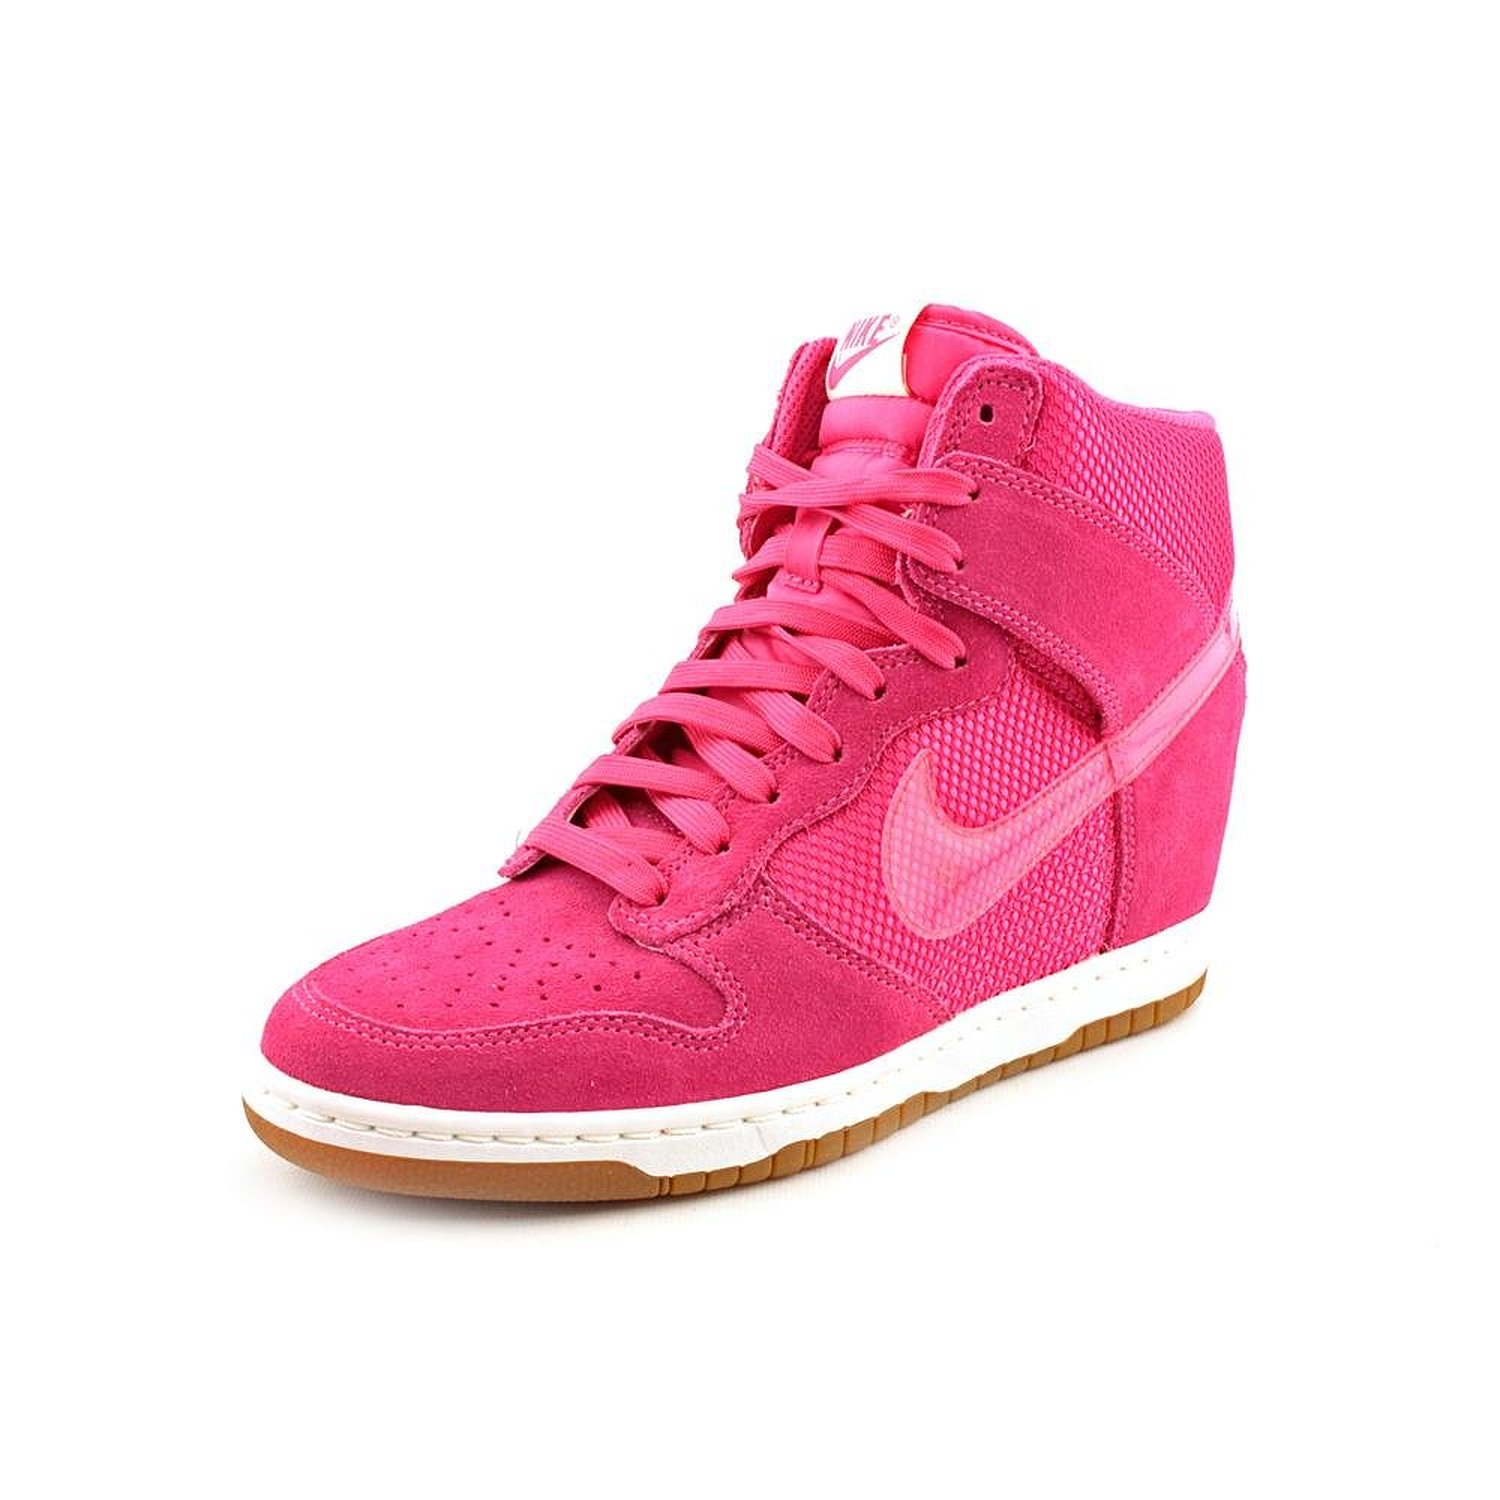 Amazon.com: Nike Dunk Sky Hi Womens Size 8 Pink Mesh Sneakers Shoes UK 5.5  EU 39: ...